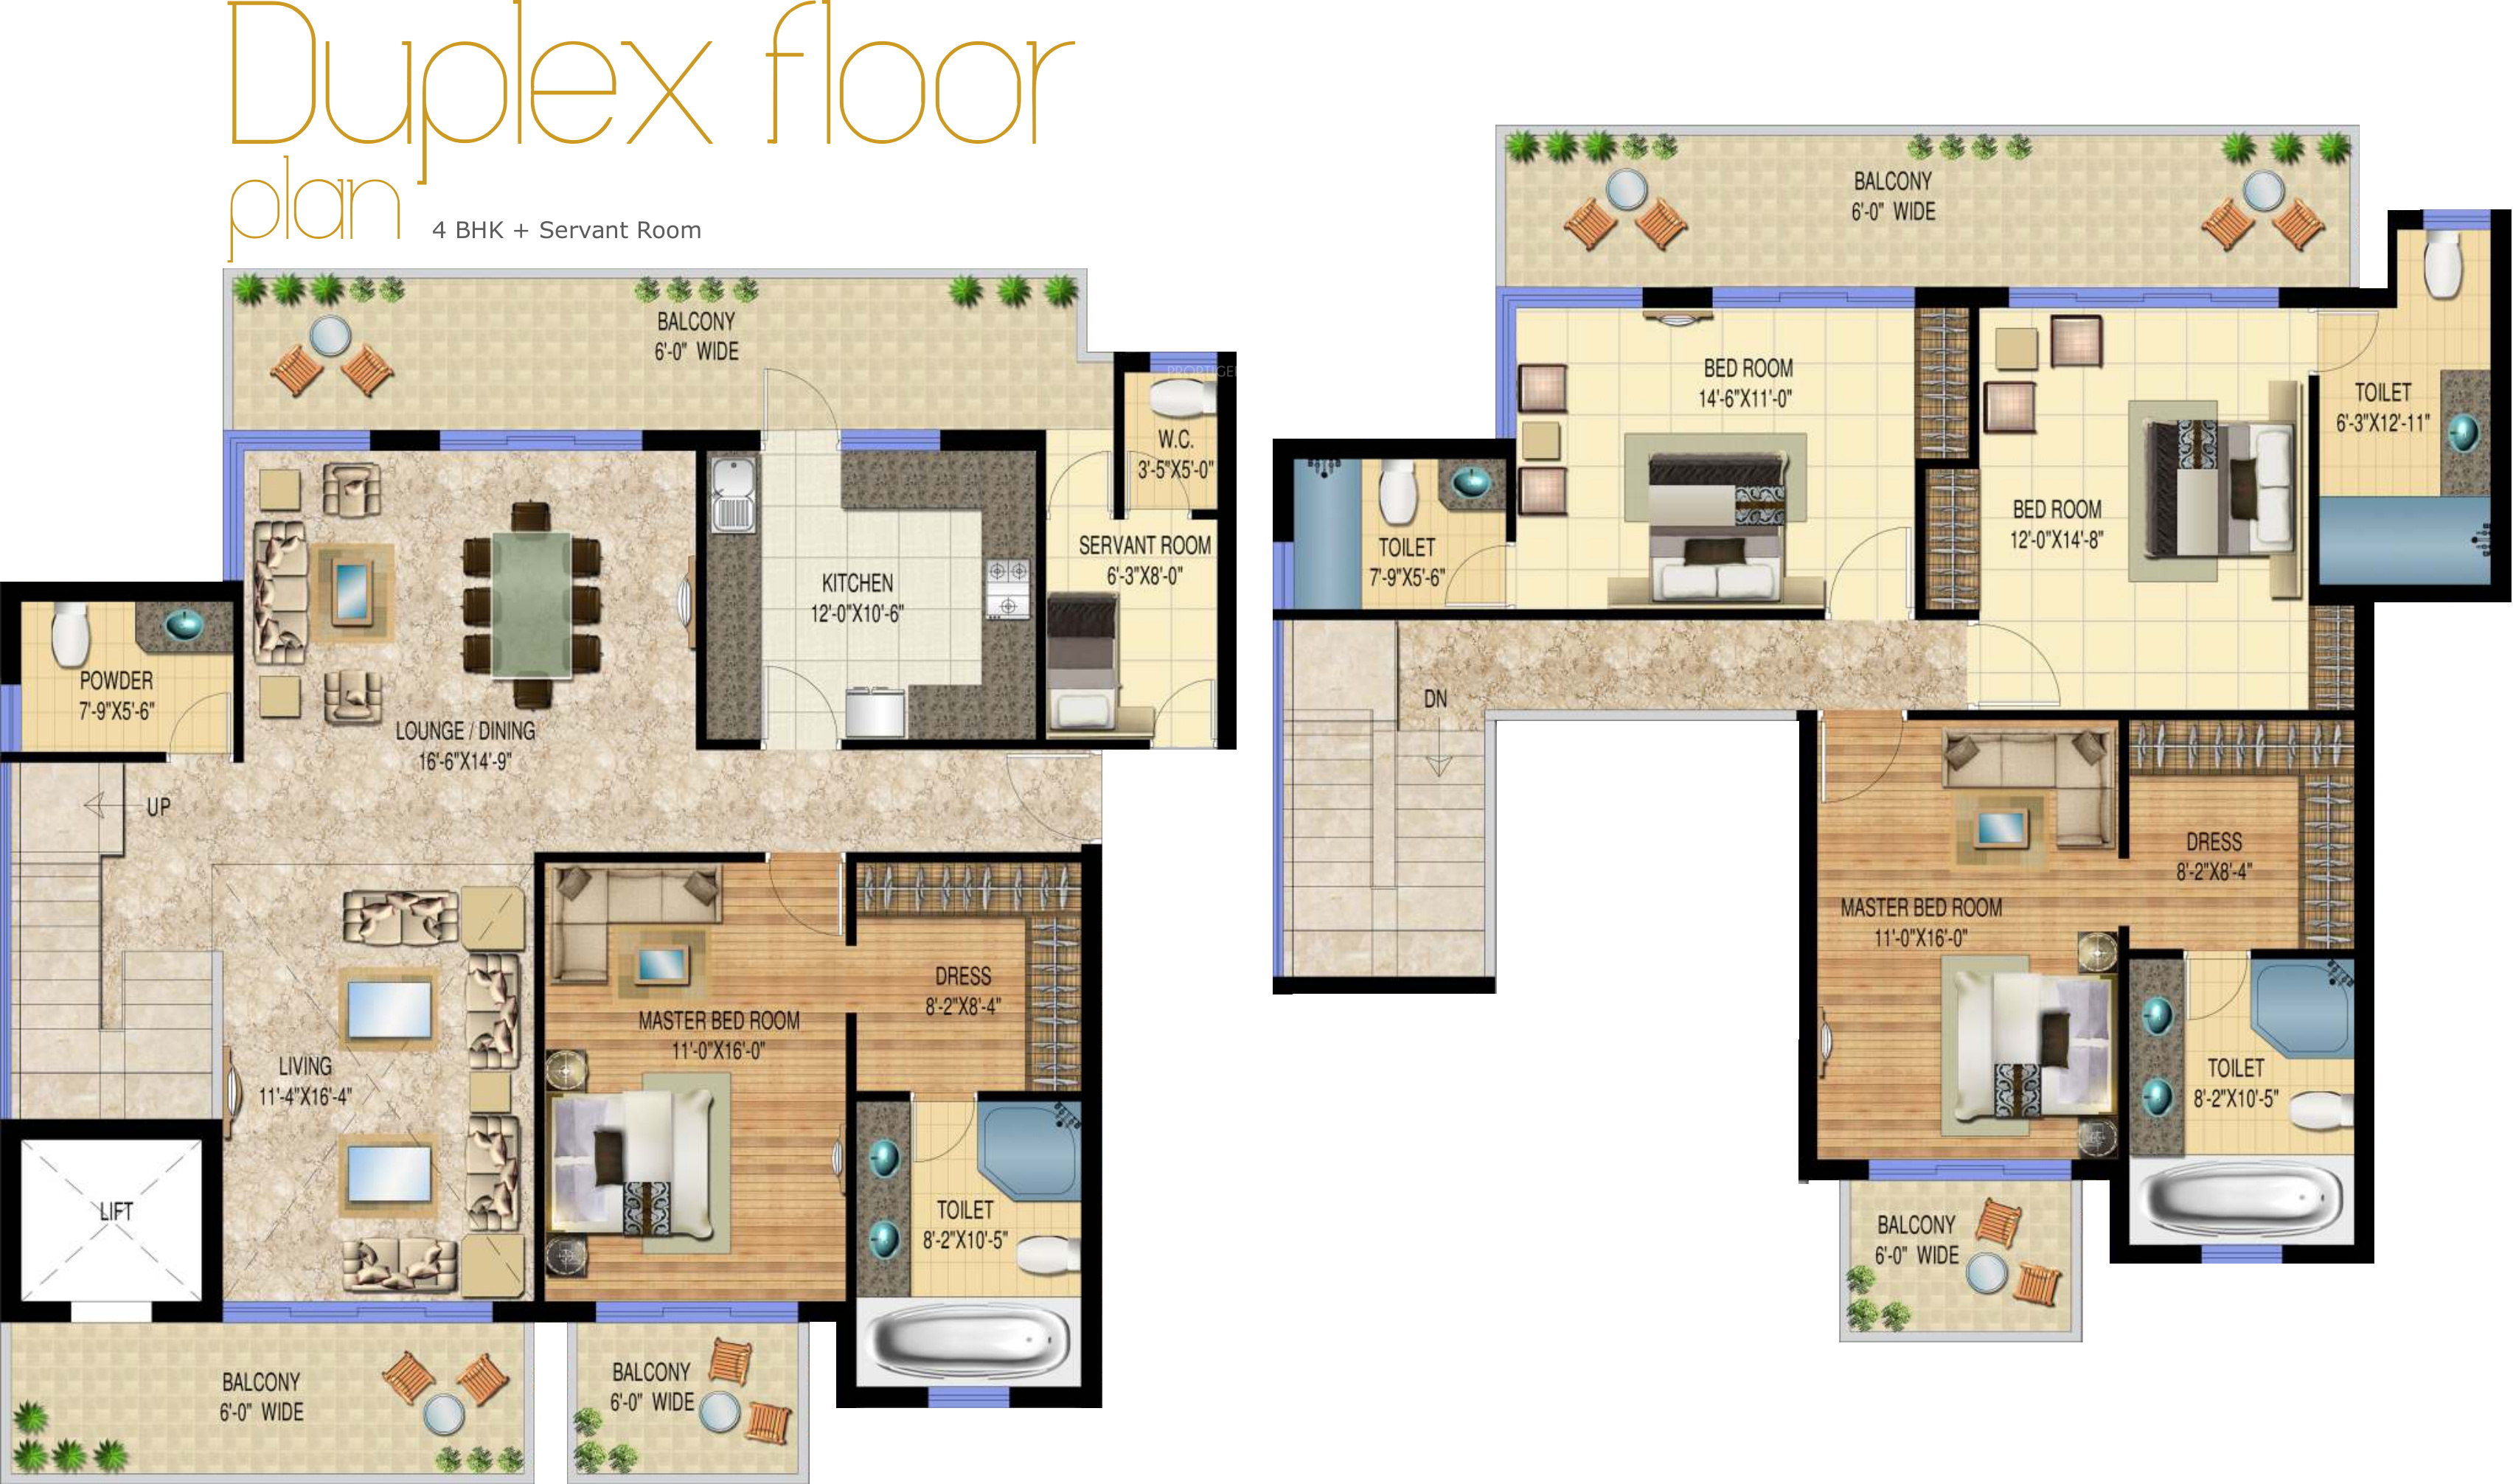 4 bhk plan house house plans for 4 bhk villa interior design